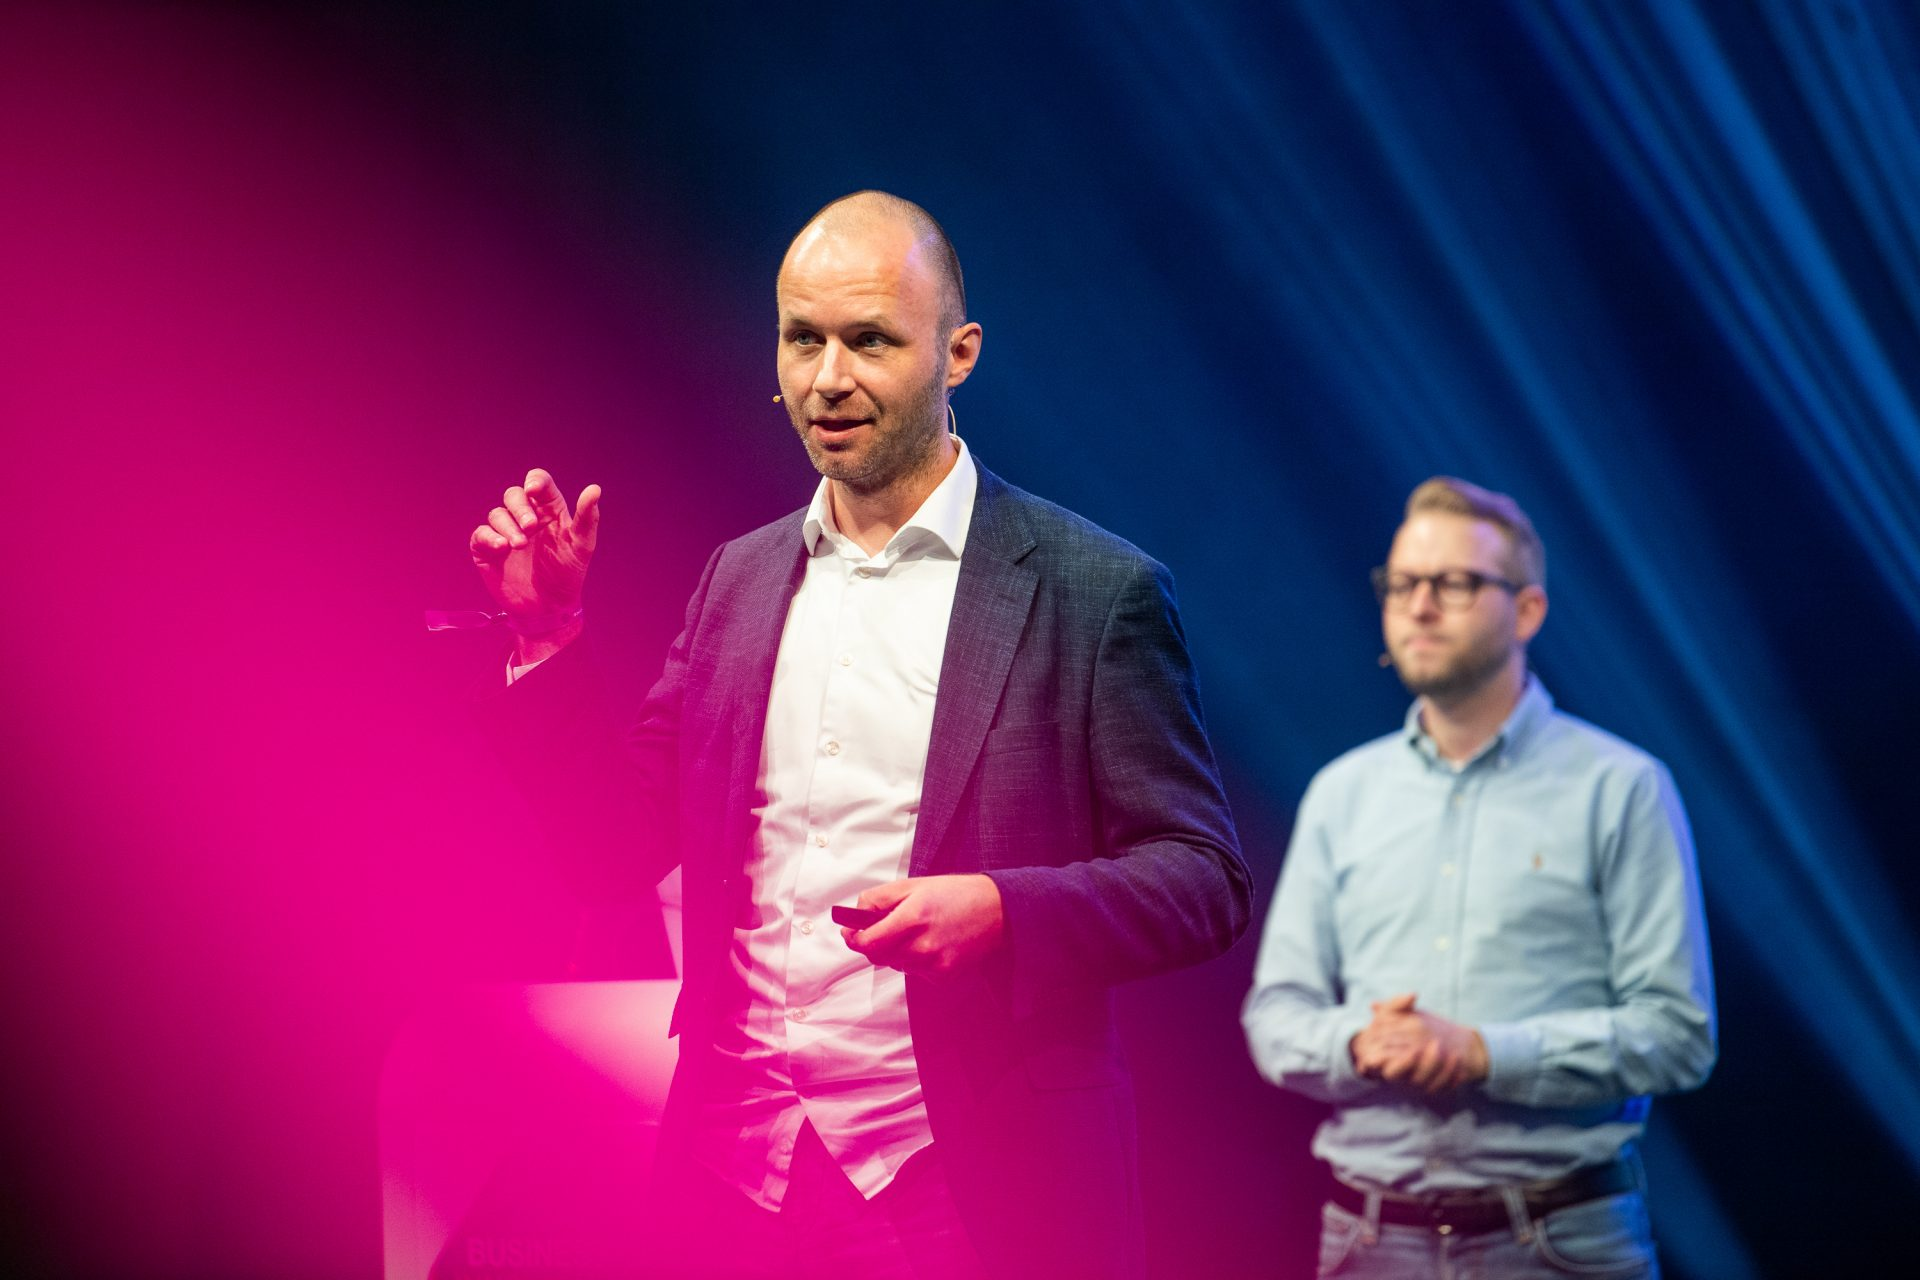 Christian Ebernickel, Business Innovation Week 2019